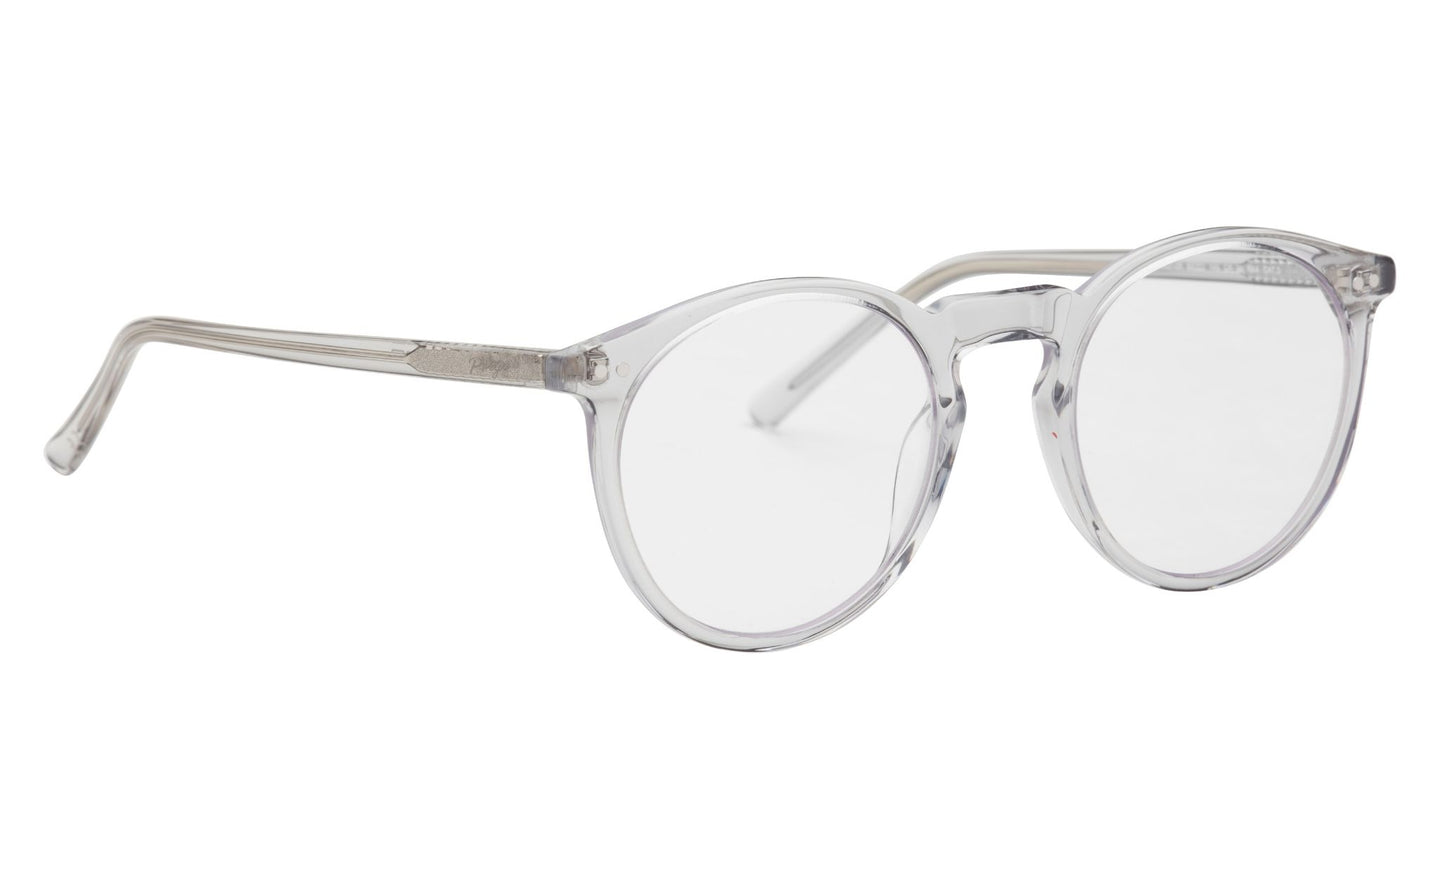 Prego - Palermo - Round Bluelight Glasses